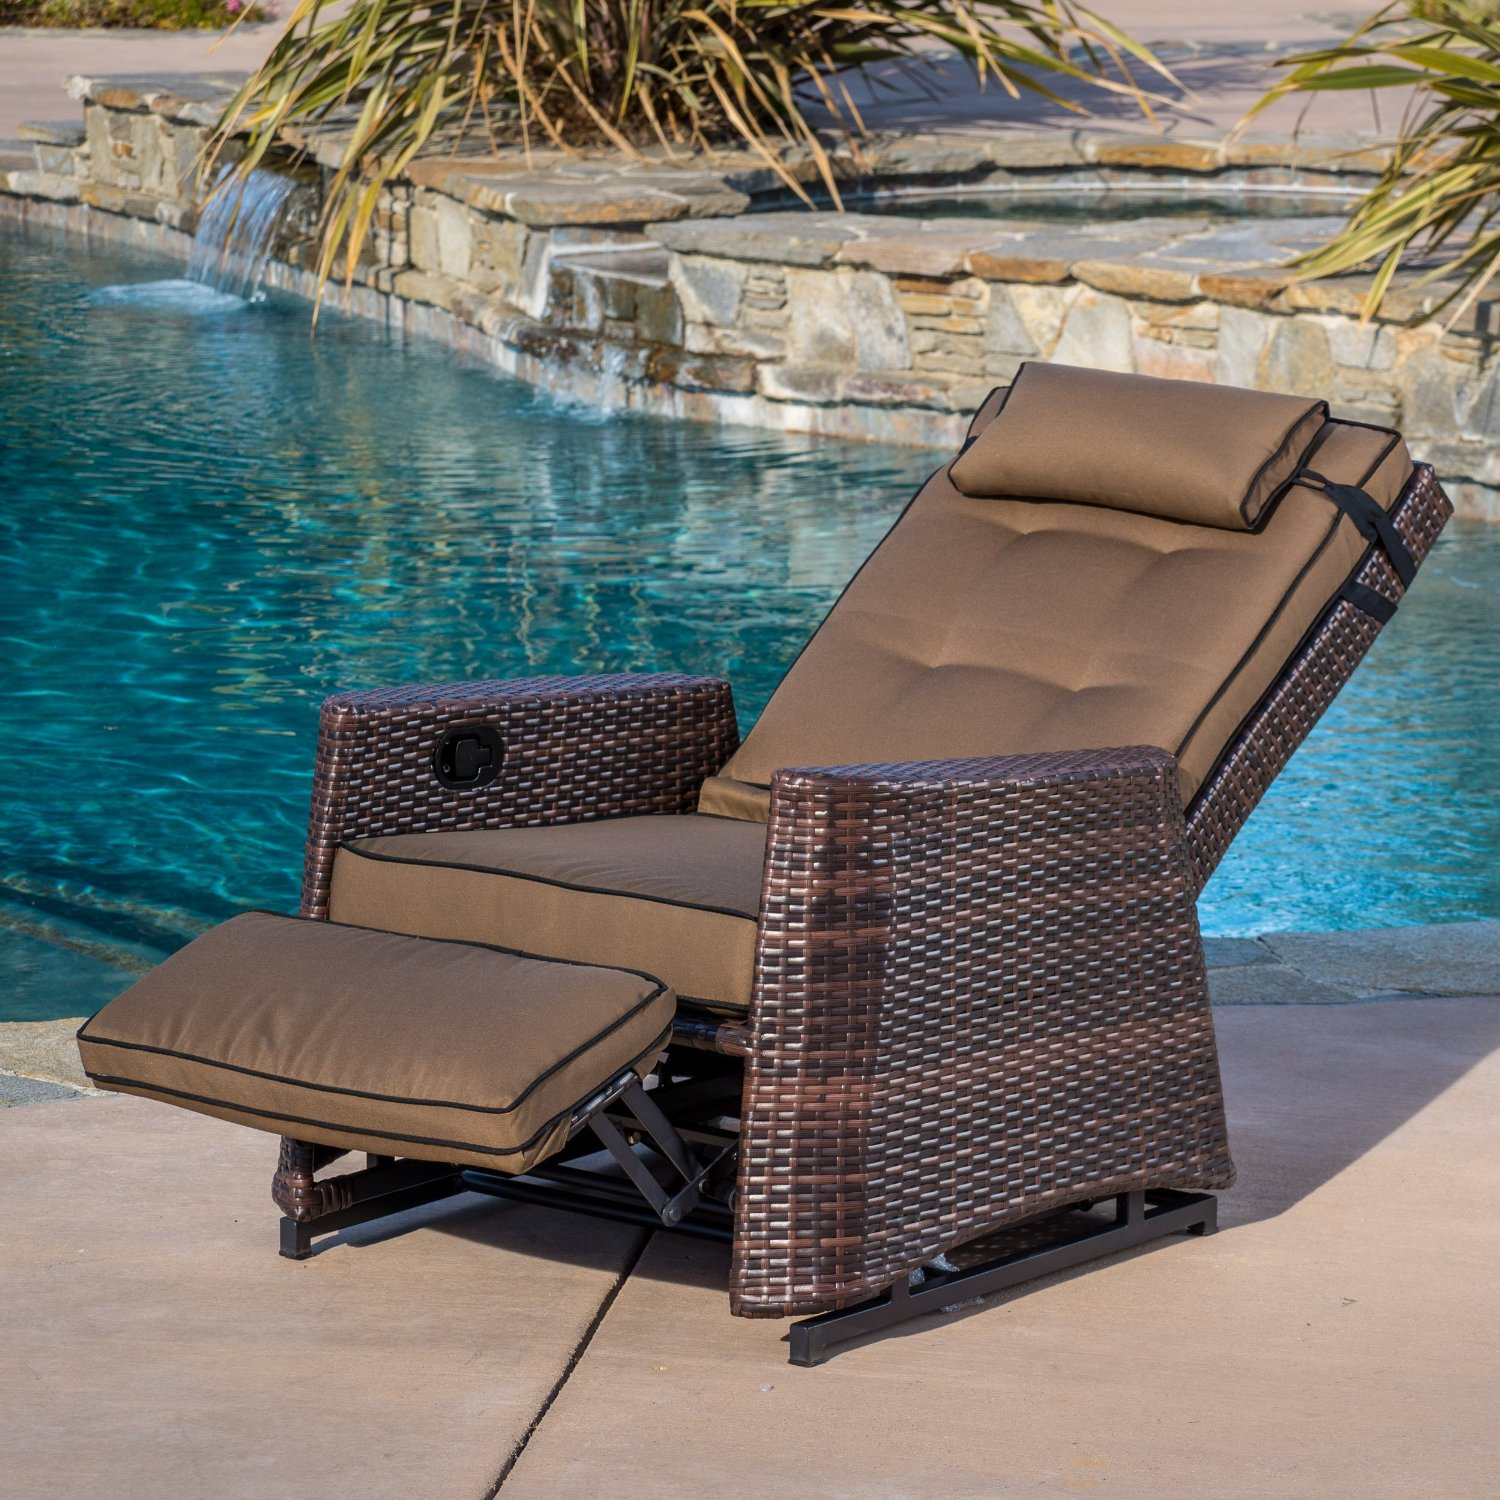 Reclining Patio Chairs Best Value Outdoor Wicker Recliners The Best Recliner